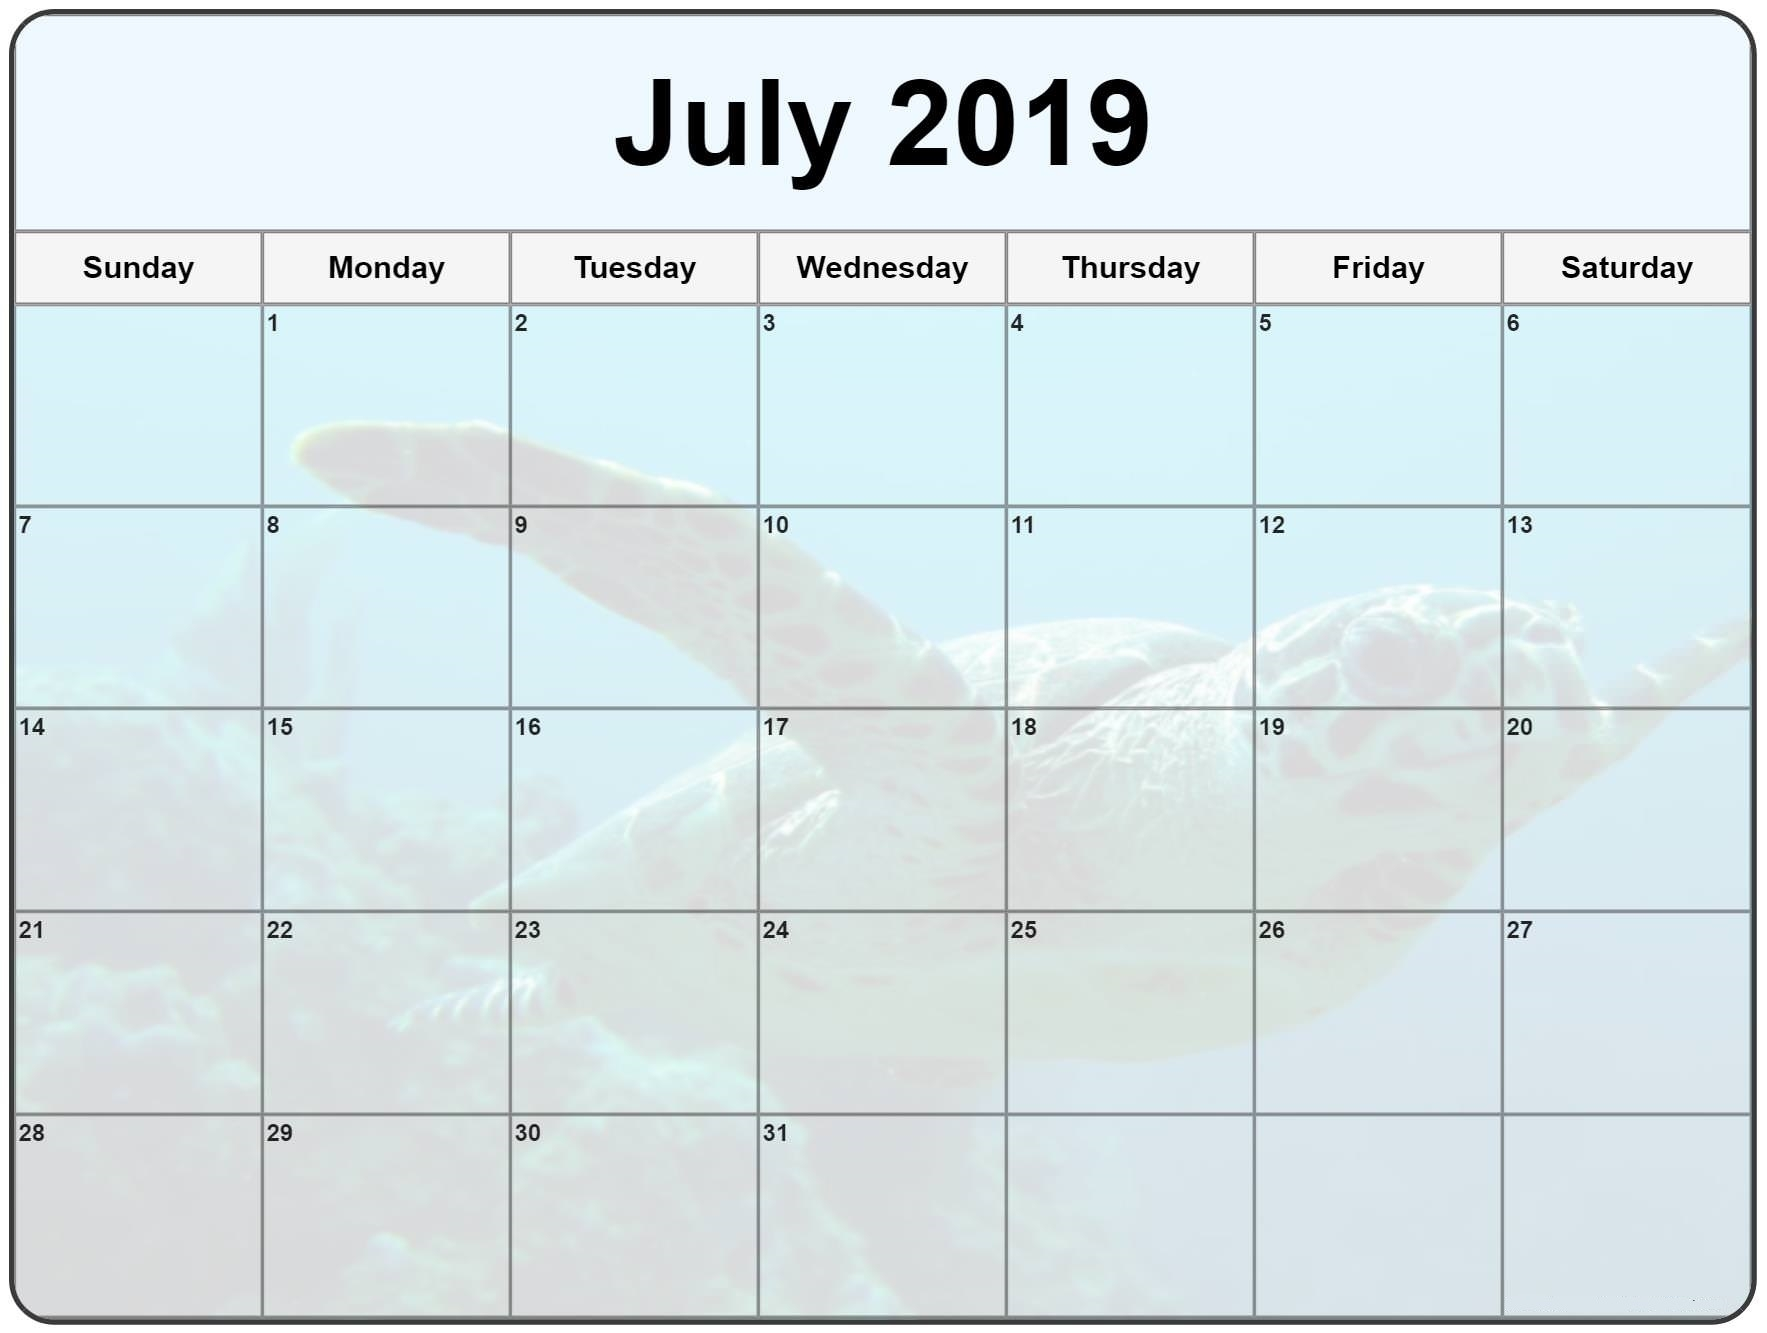 july 2019 editable calendar free printable calendar templates::July 2019 Calendar